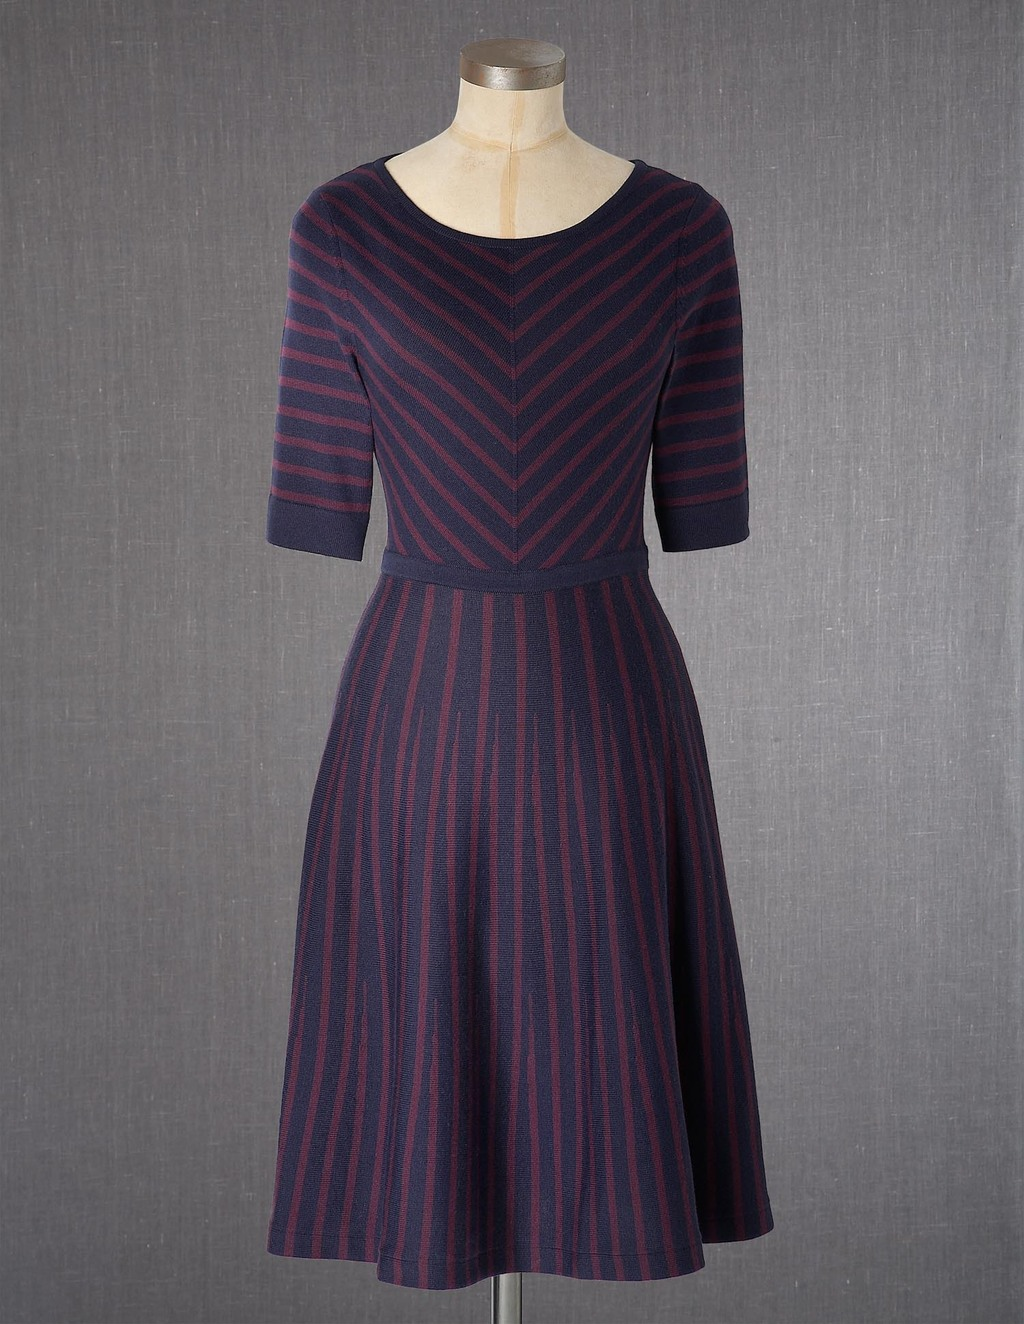 Amelie Dress - neckline: round neck; pattern: striped; secondary colour: magenta; predominant colour: navy; length: just above the knee; fit: fitted at waist & bust; style: fit & flare; fibres: wool - mix; sleeve length: half sleeve; sleeve style: standard; texture group: knits/crochet; pattern type: knitted - other; pattern size: light/subtle; occasions: creative work; season: a/w 2013